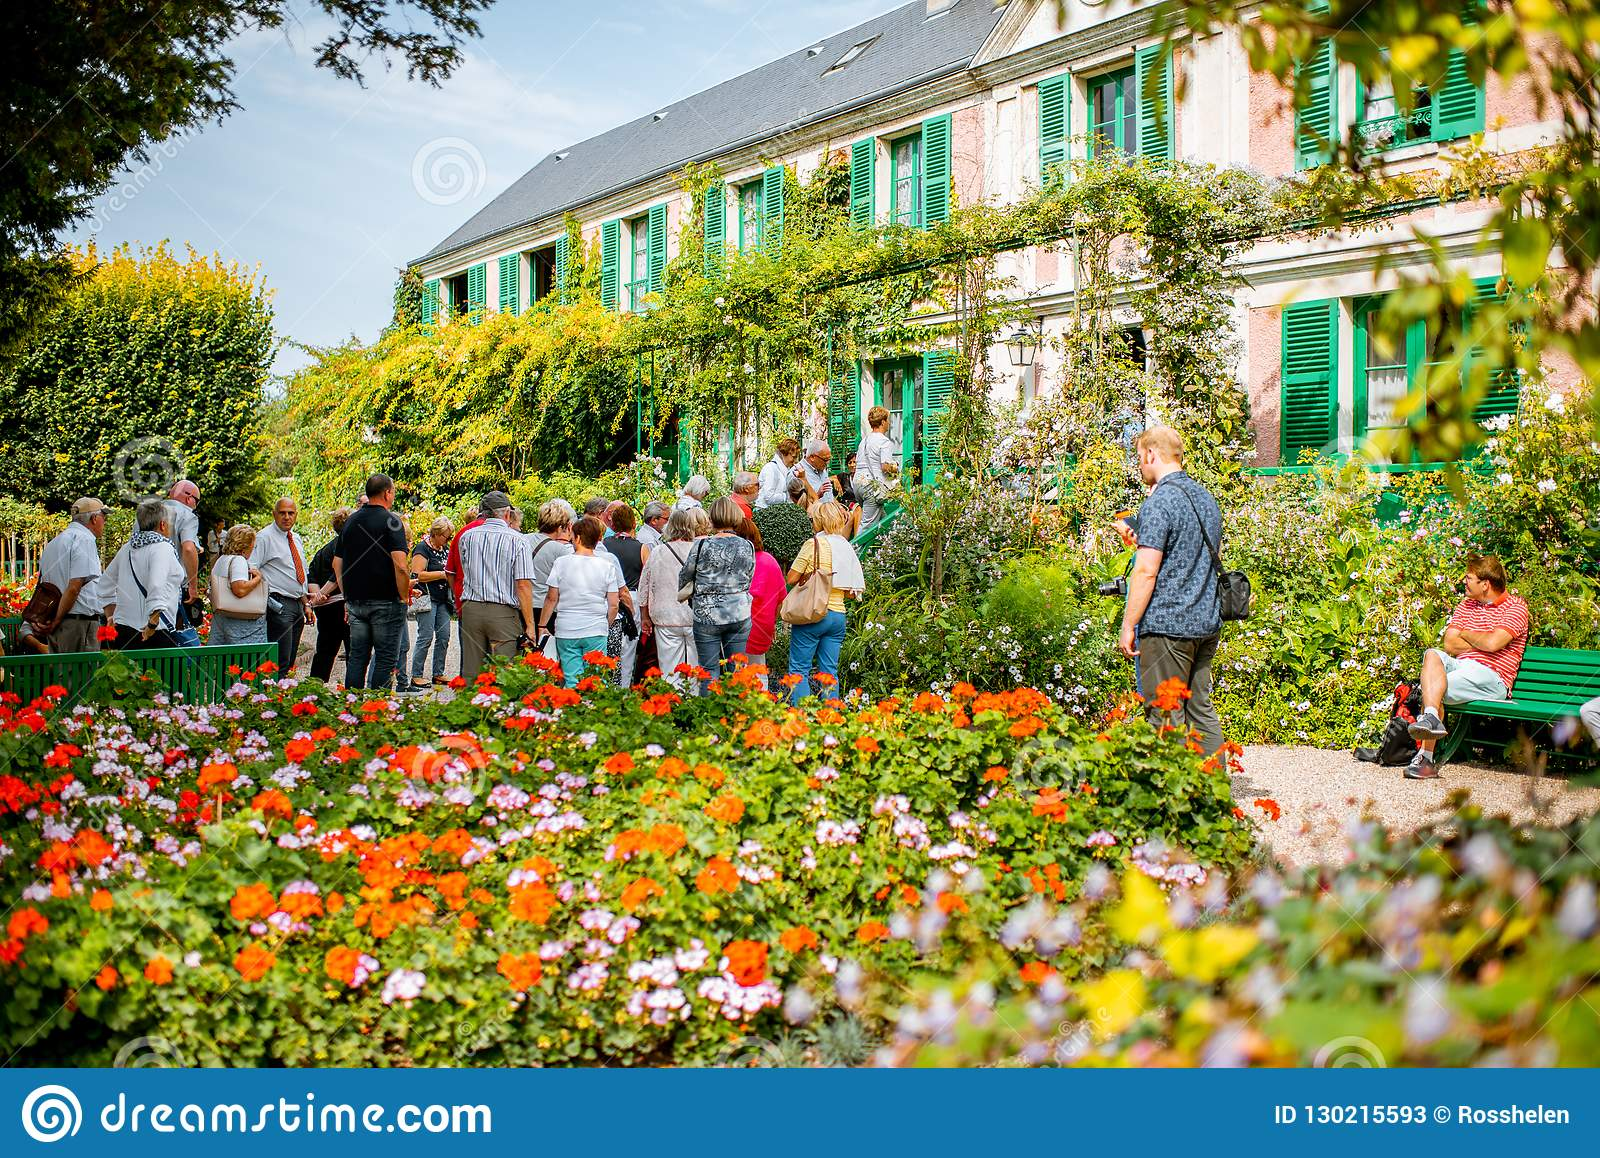 Map Of France Giverny.Beautiful House With Garden In Giverny France Editorial Stock Photo